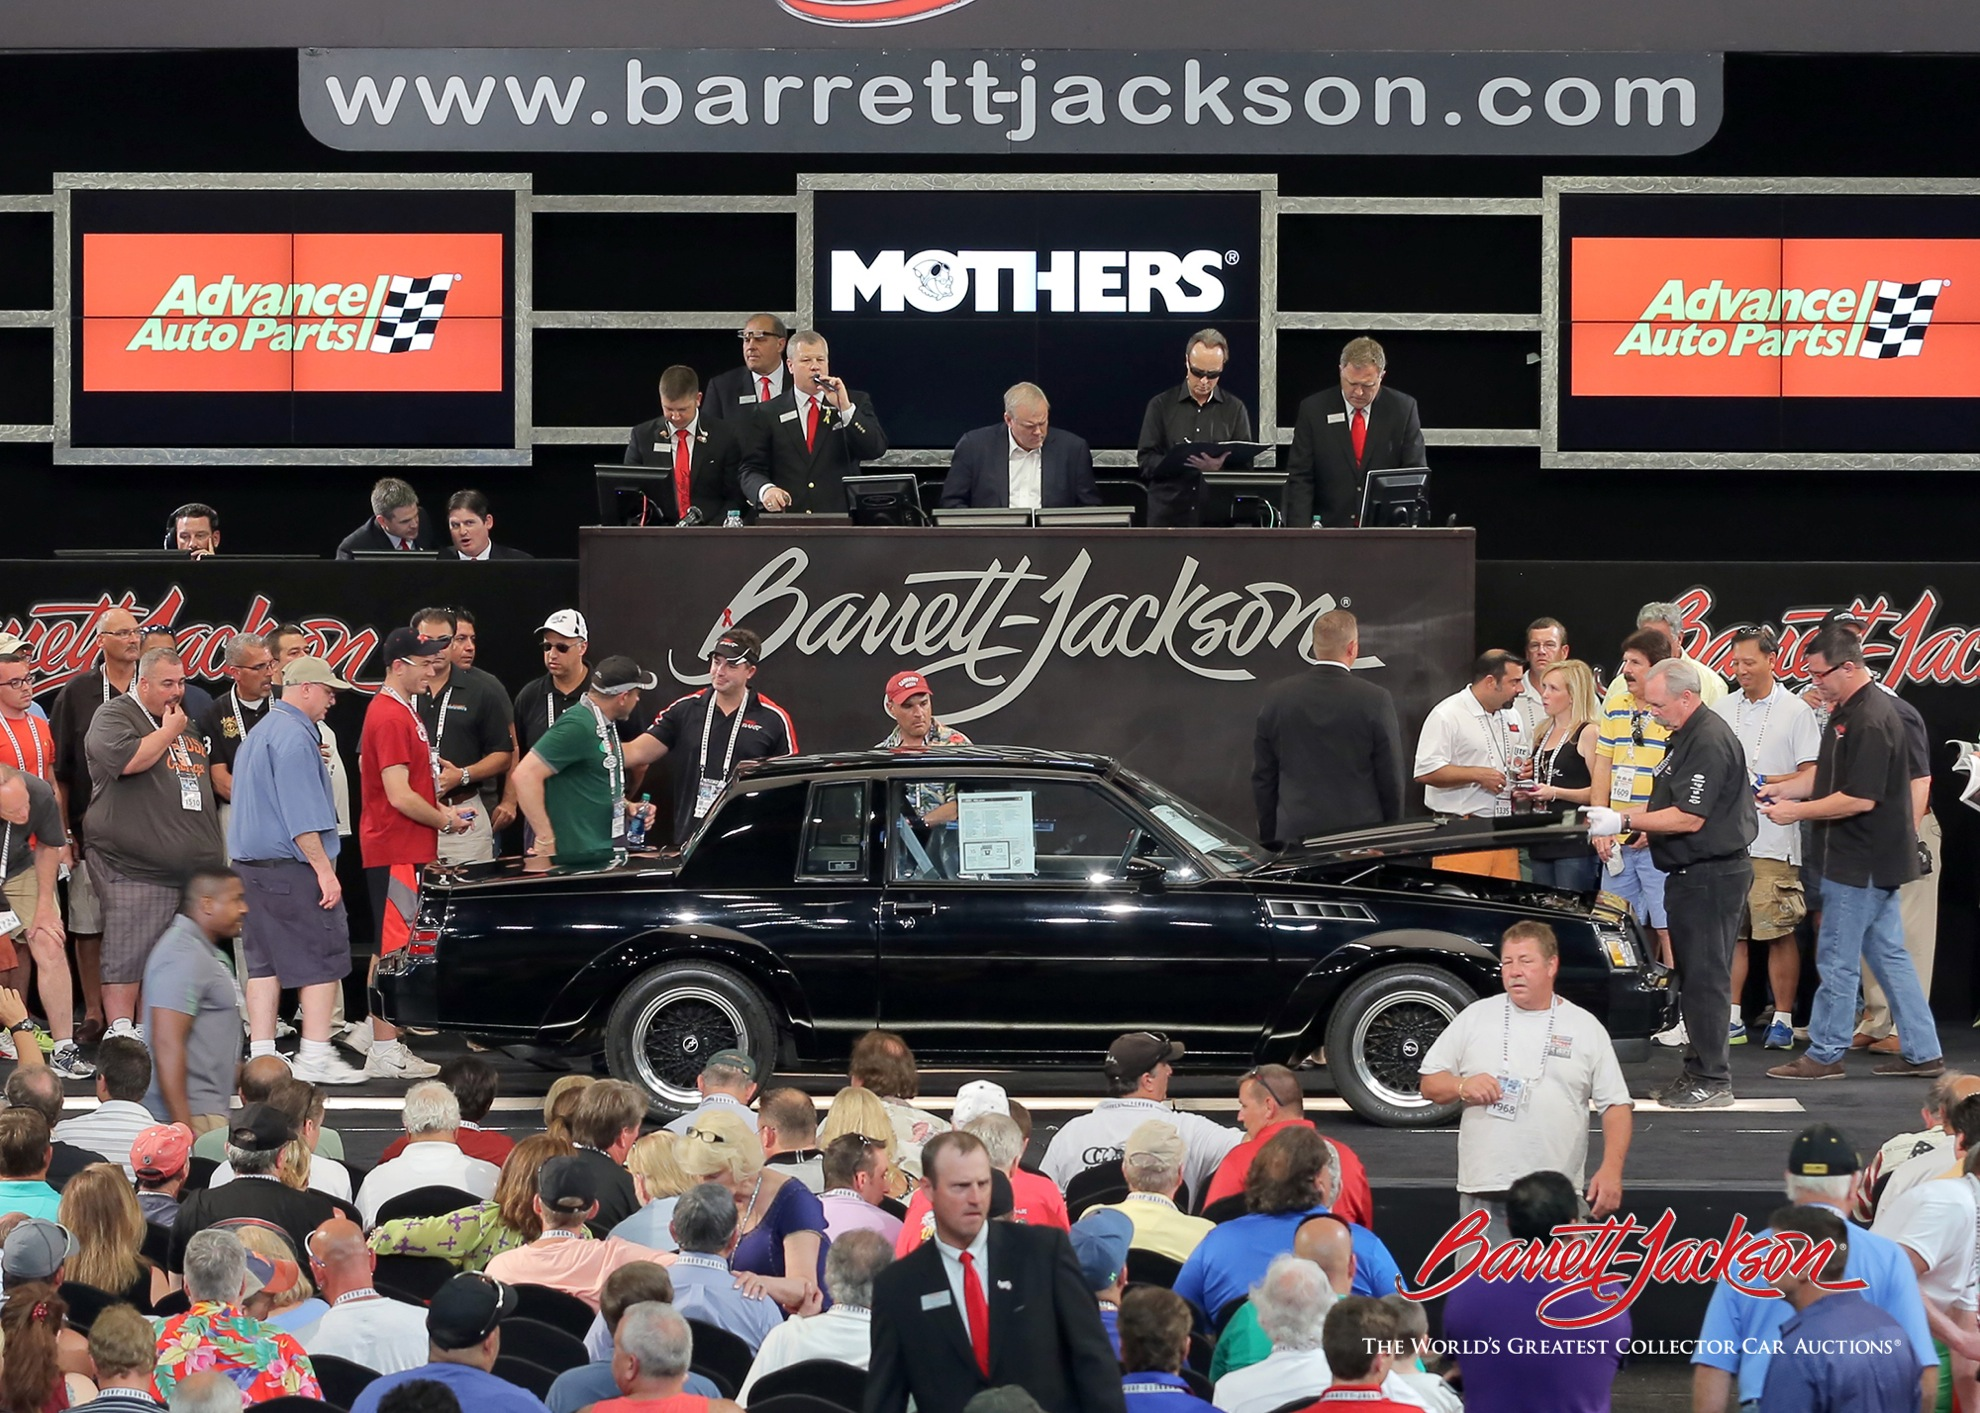 Lot #387 – 1987 Buick Grand National GNX – $165,000 - A NEW WORLD RECORD!